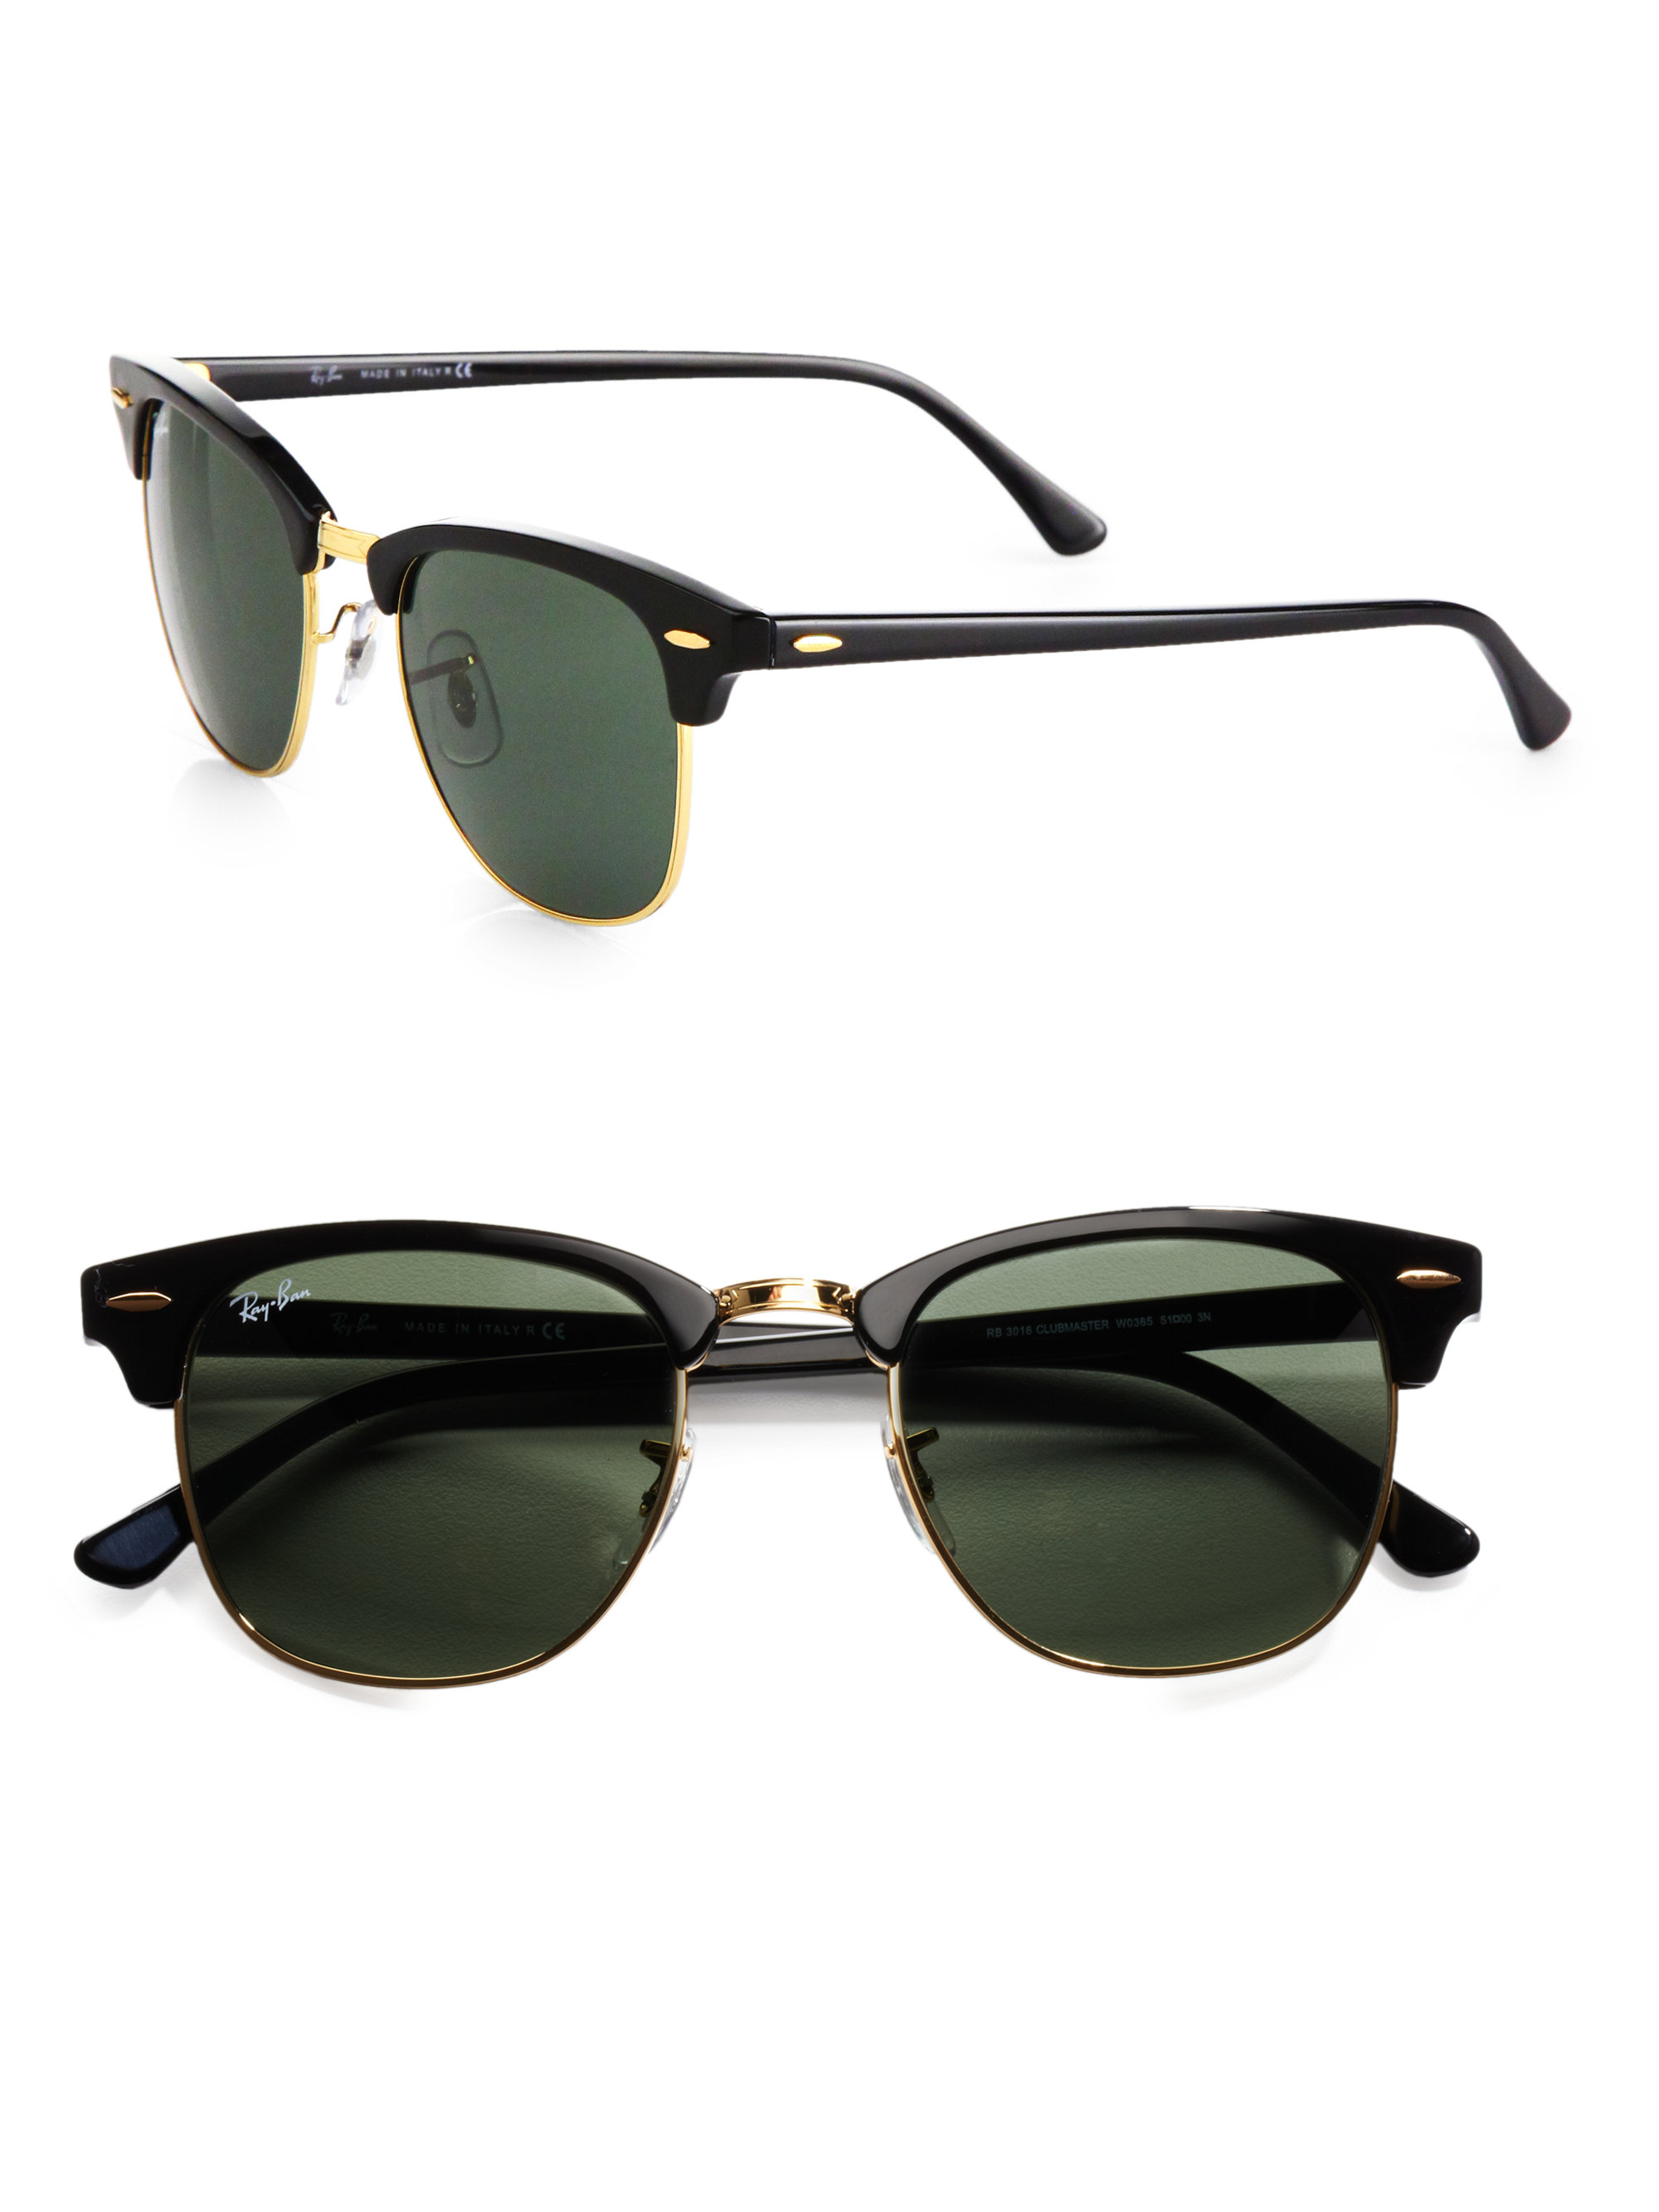 Clubmaster Sunglasses Ray Ban  ray ban classic clubmaster sunglasses in black for men lyst